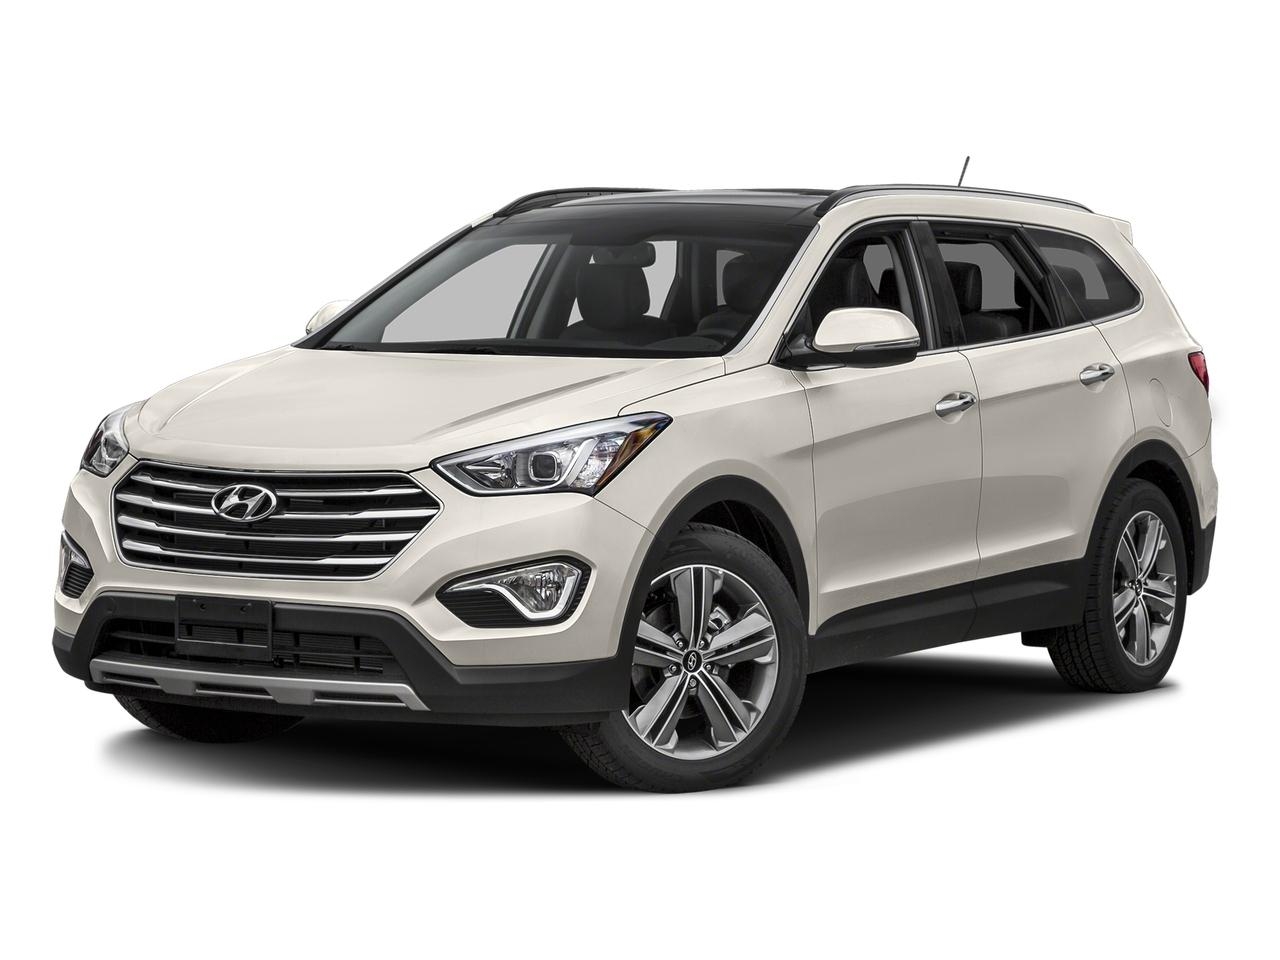 2016 Hyundai Santa Fe Vehicle Photo in Temple, TX 76502